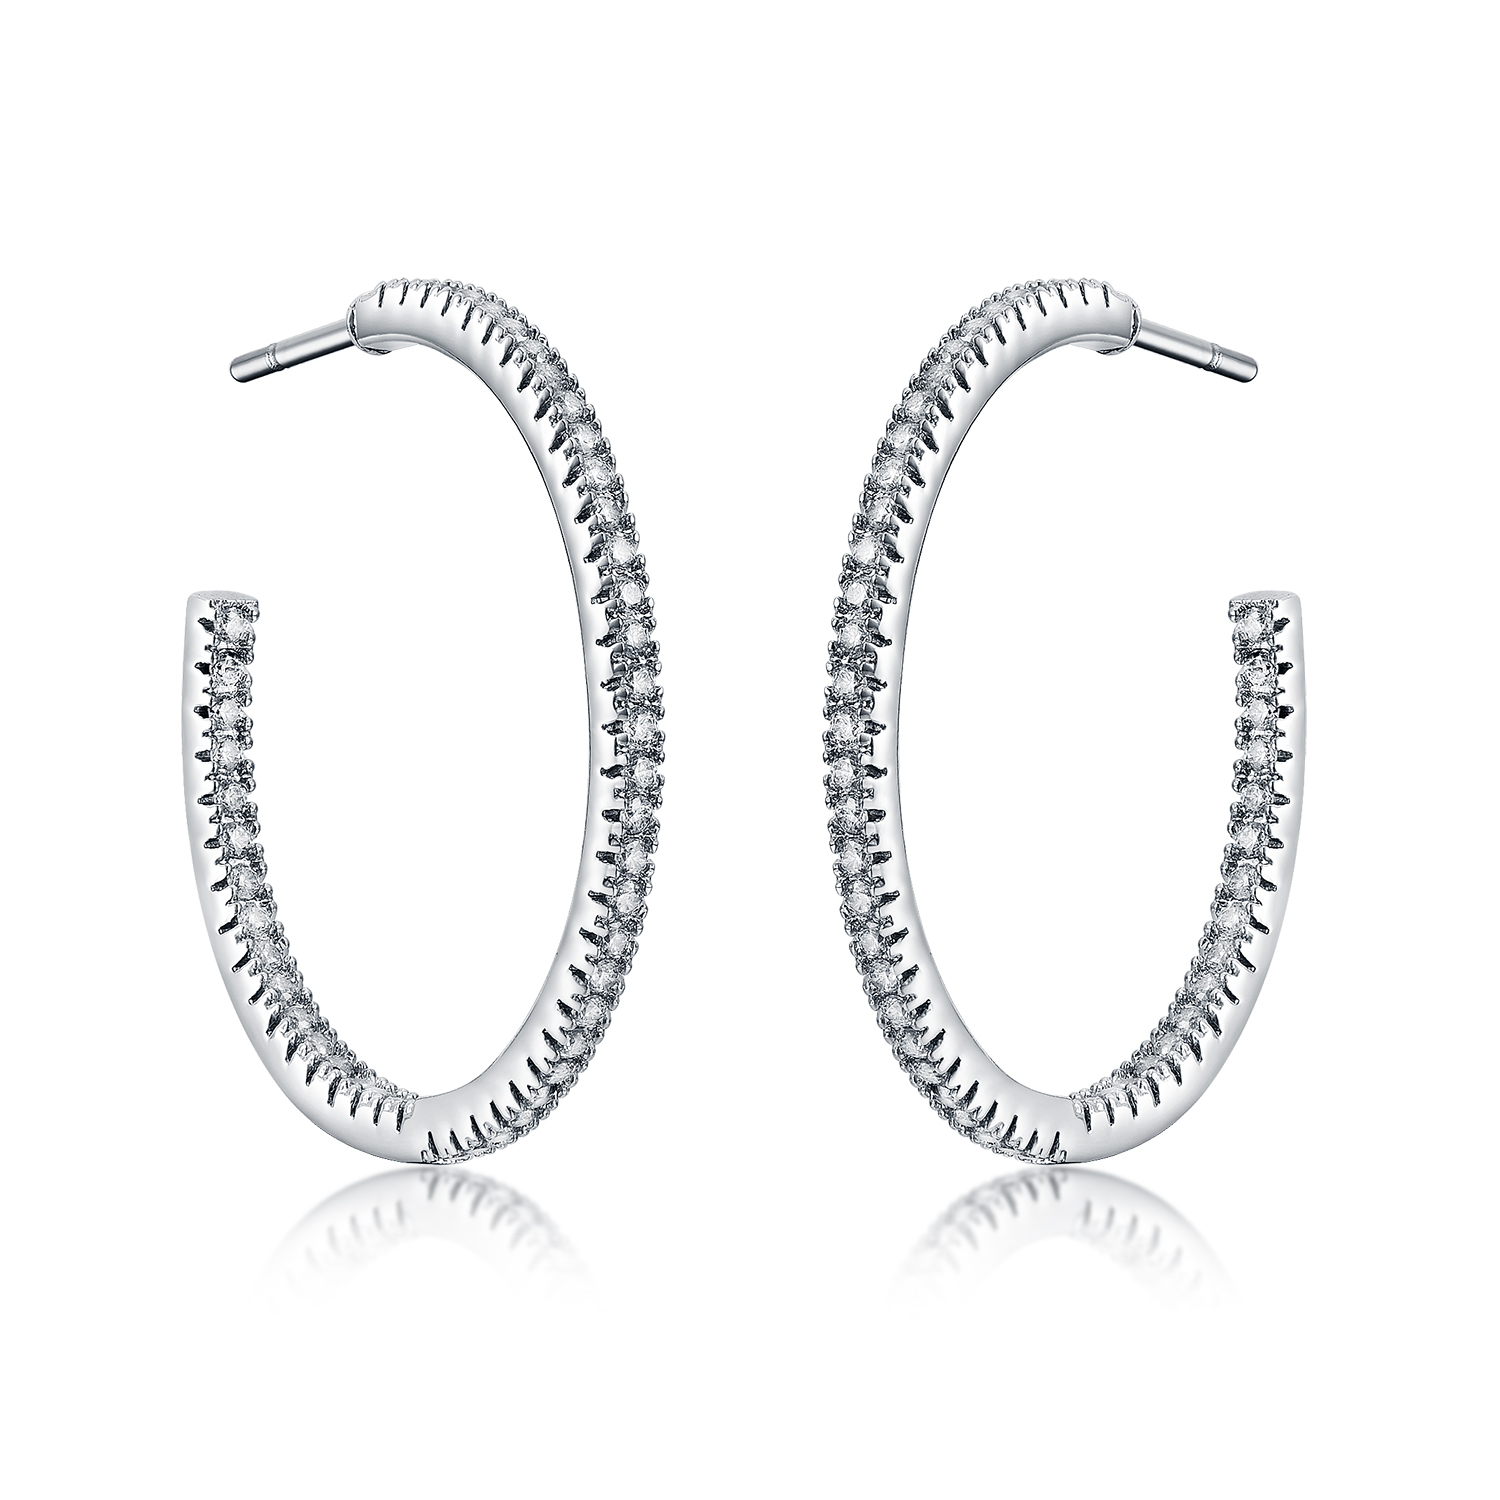 ER4511 Pave Setting CZ hoop Earring with Rhodium plating in Sterling Silver from Top Jewelry manufacturer in China